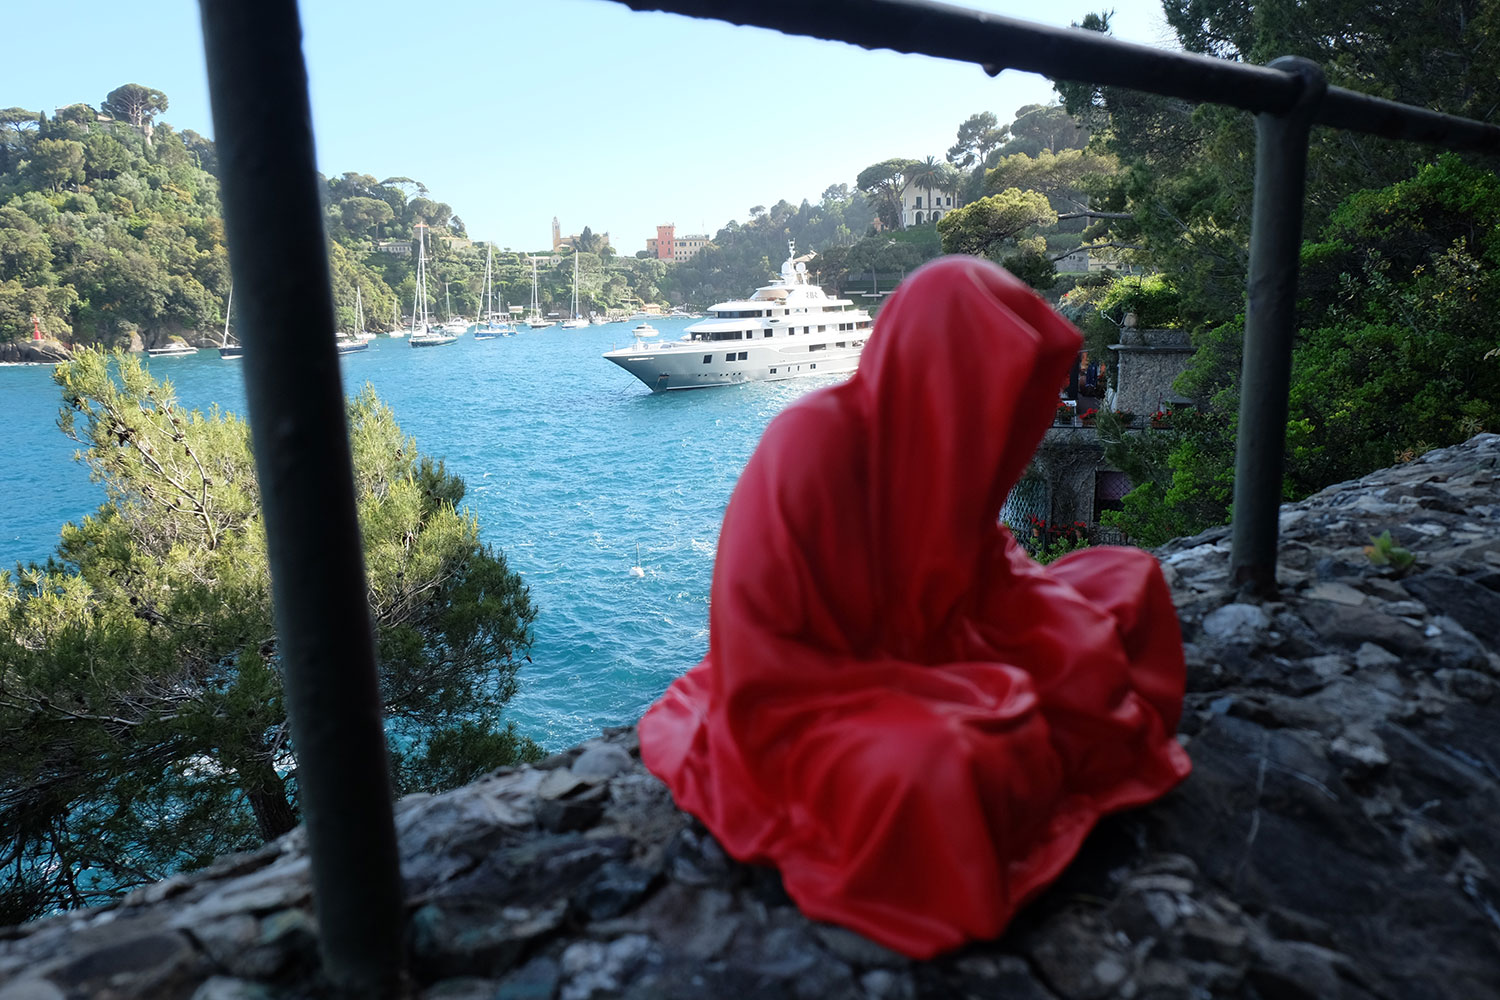 guardians-of-time-manfred-kili-kielnhofer-contemporary-fine-art-sculpture-tour-italy-genova-rapallo-portofino-see-cost-2446